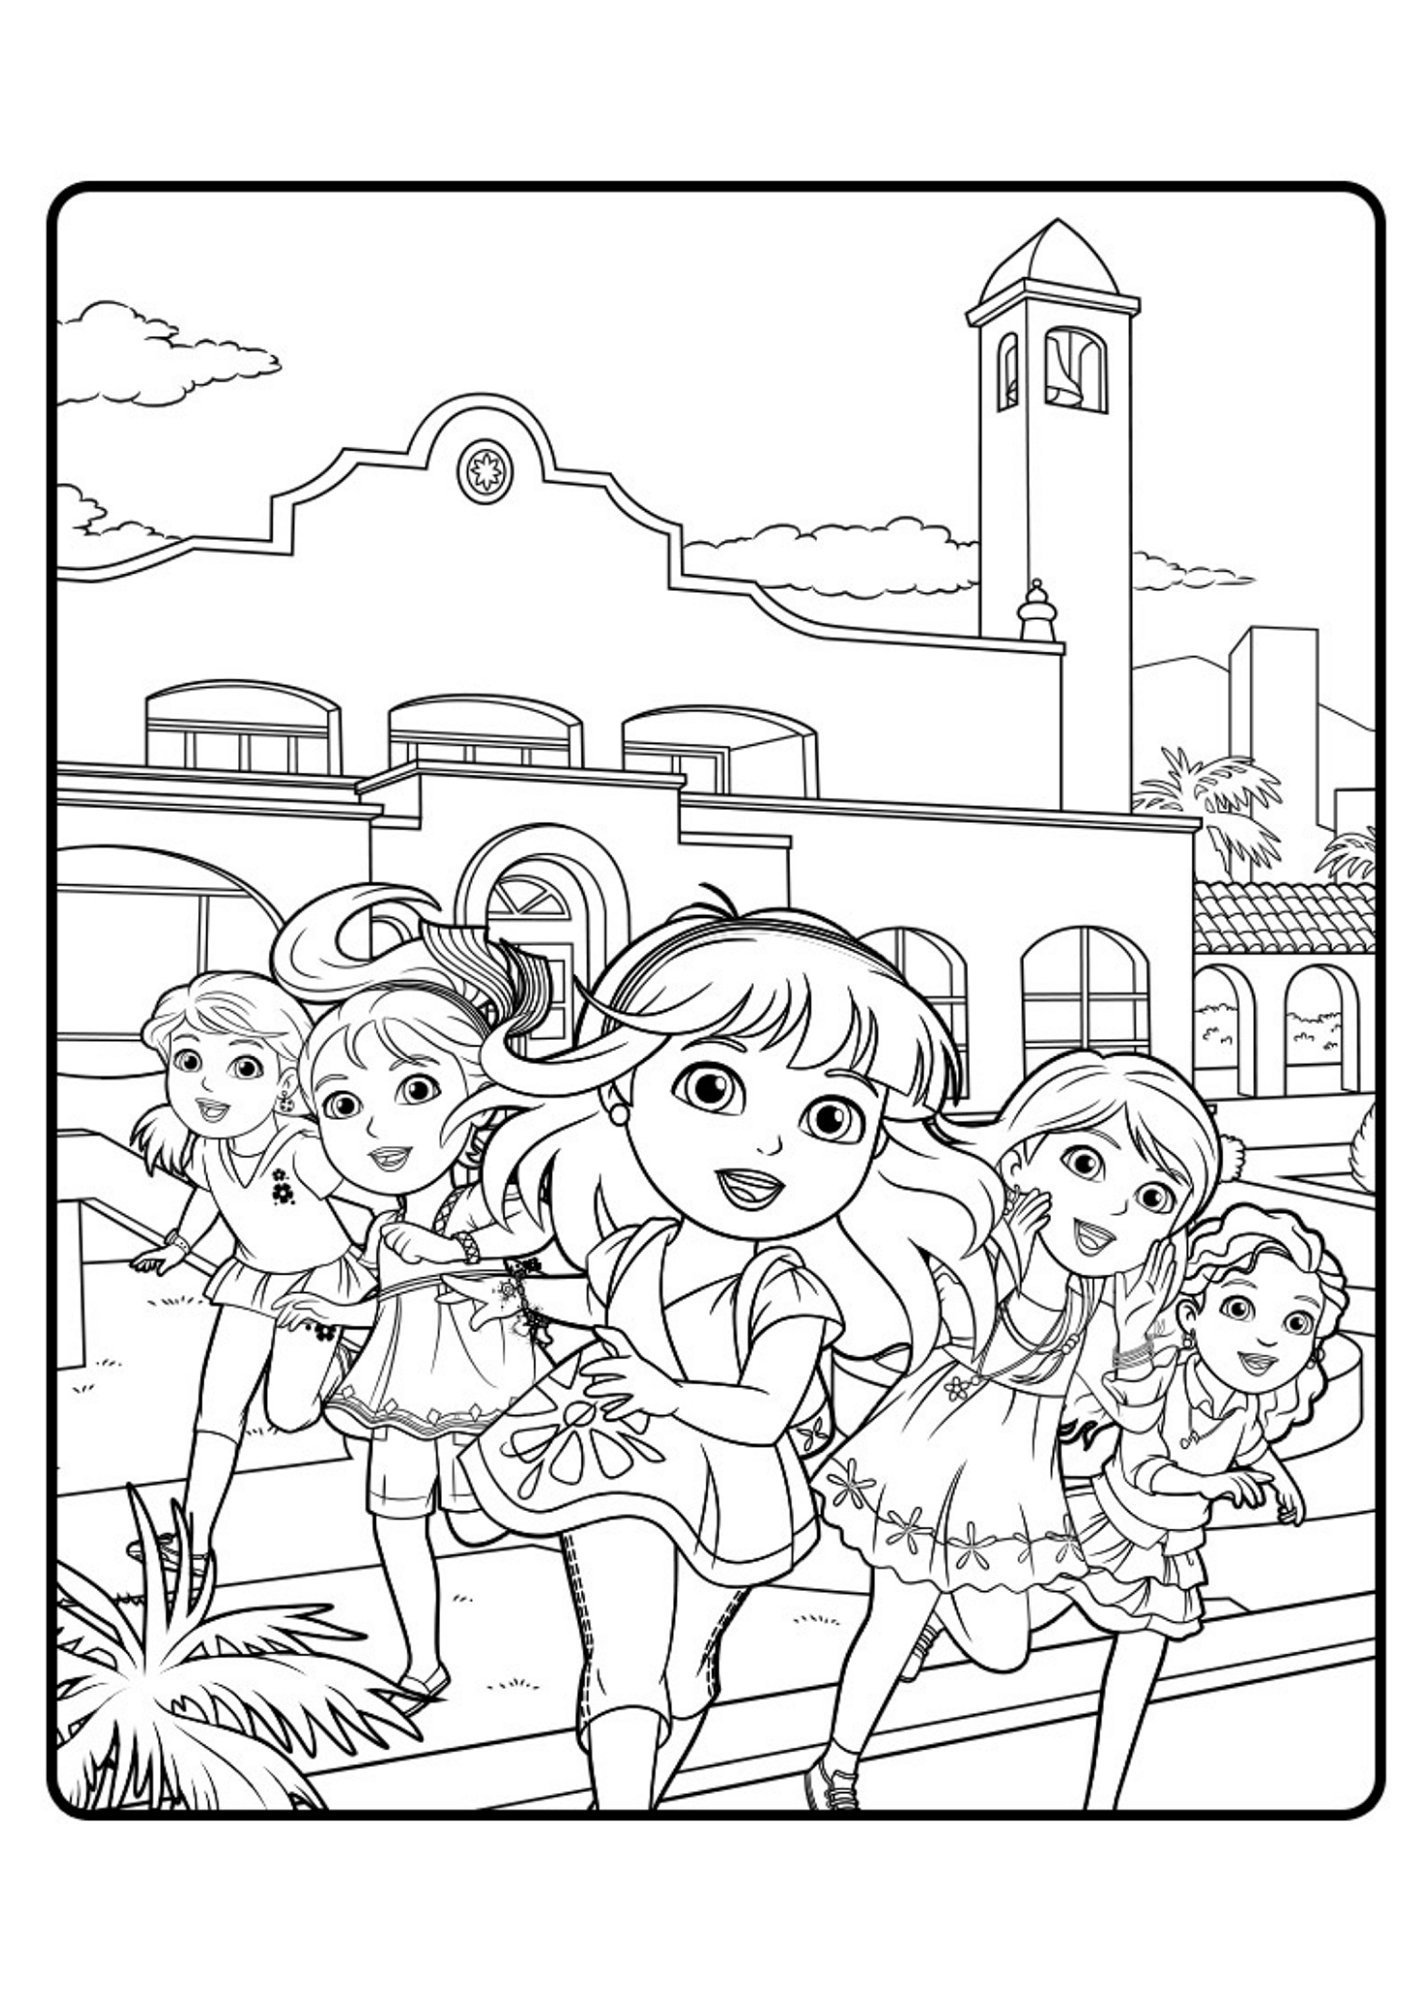 coloring pages dora and friends image cartoon dora the explorer and friends coloring friends coloring dora pages and